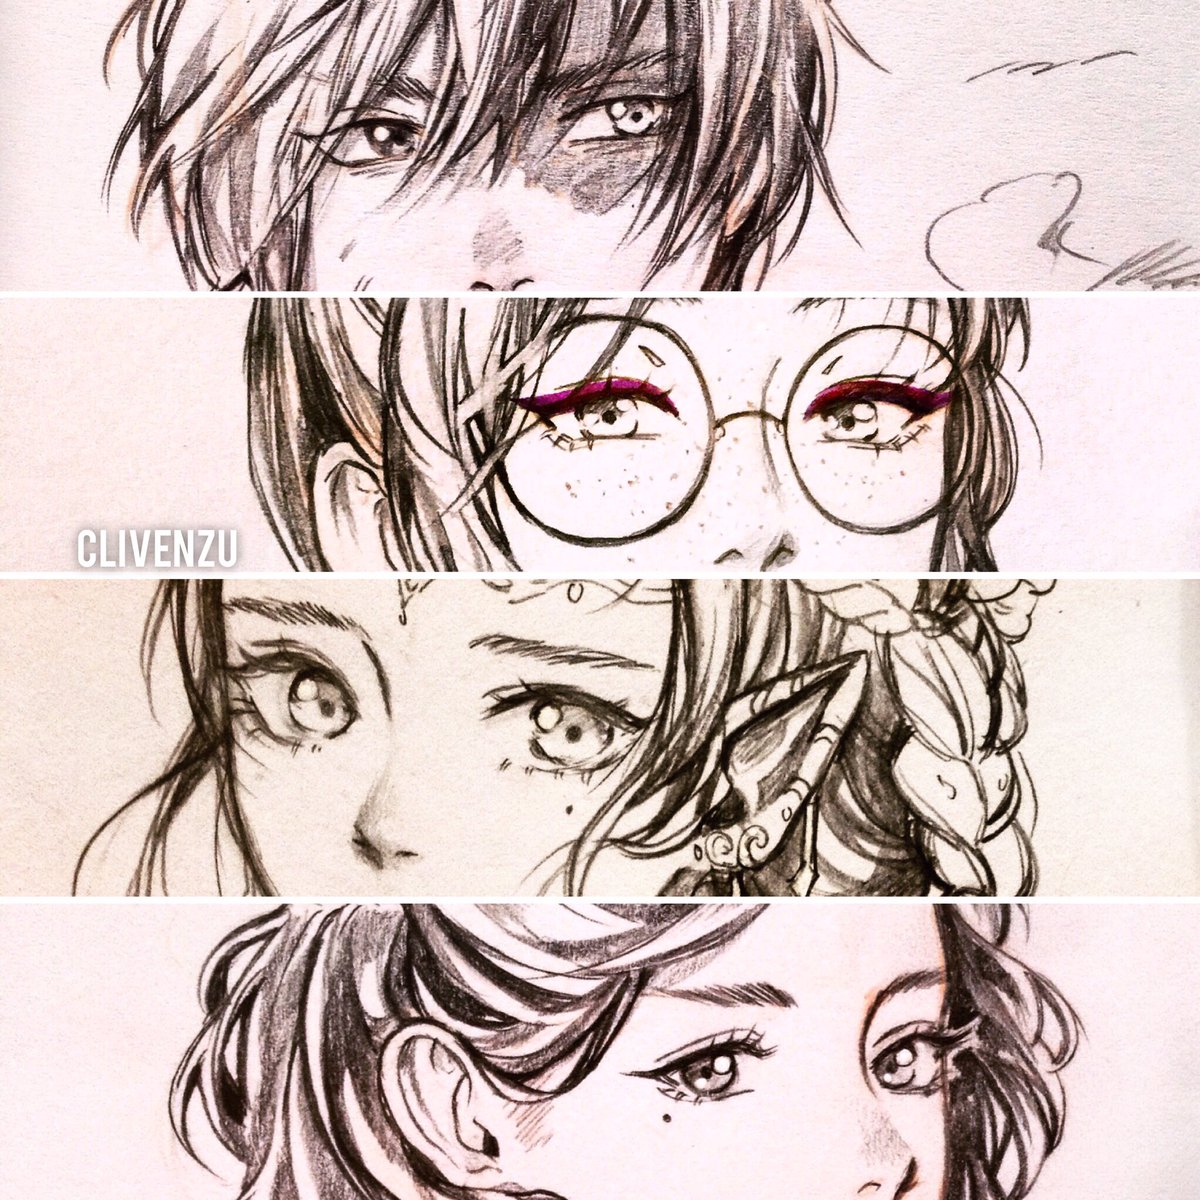 anime girl boy: manga close-up eyes collection of clivenzu